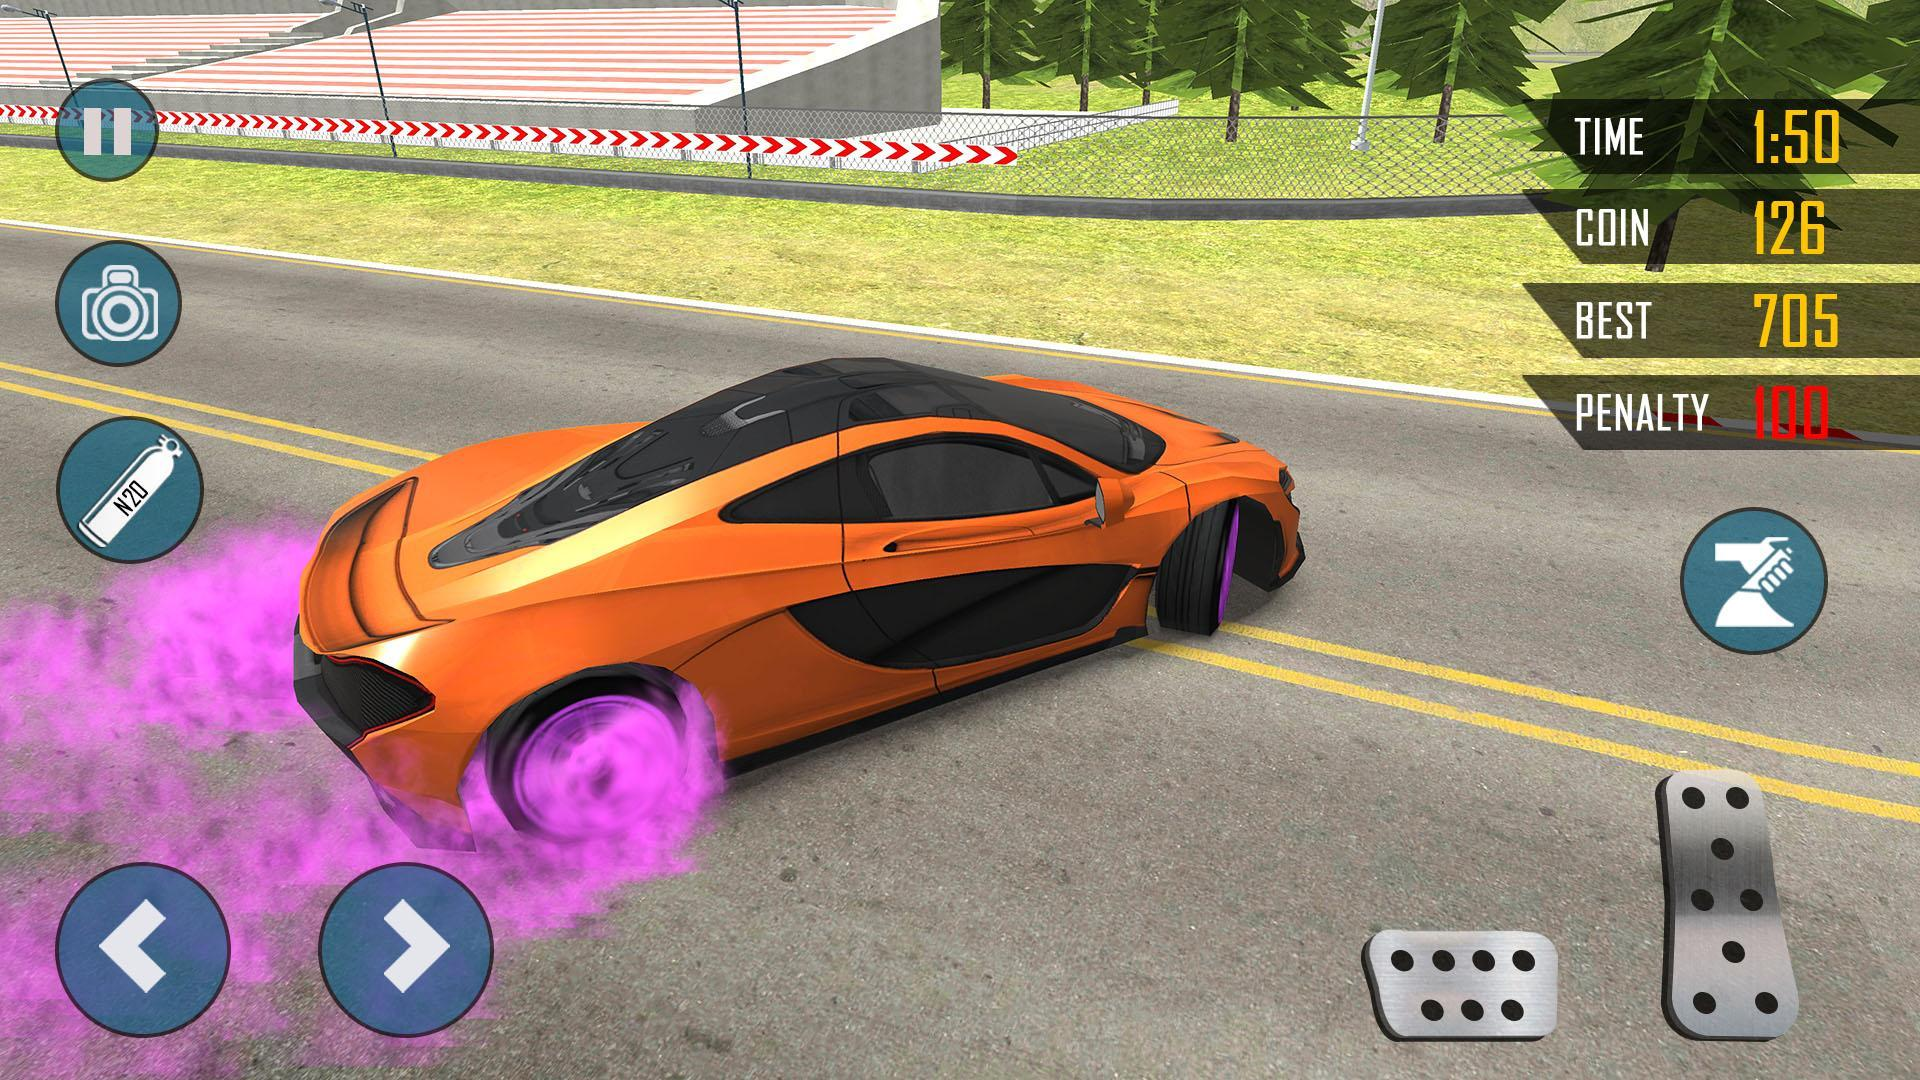 Drift Car 2019 : GT Car Simulation for Android - APK Download